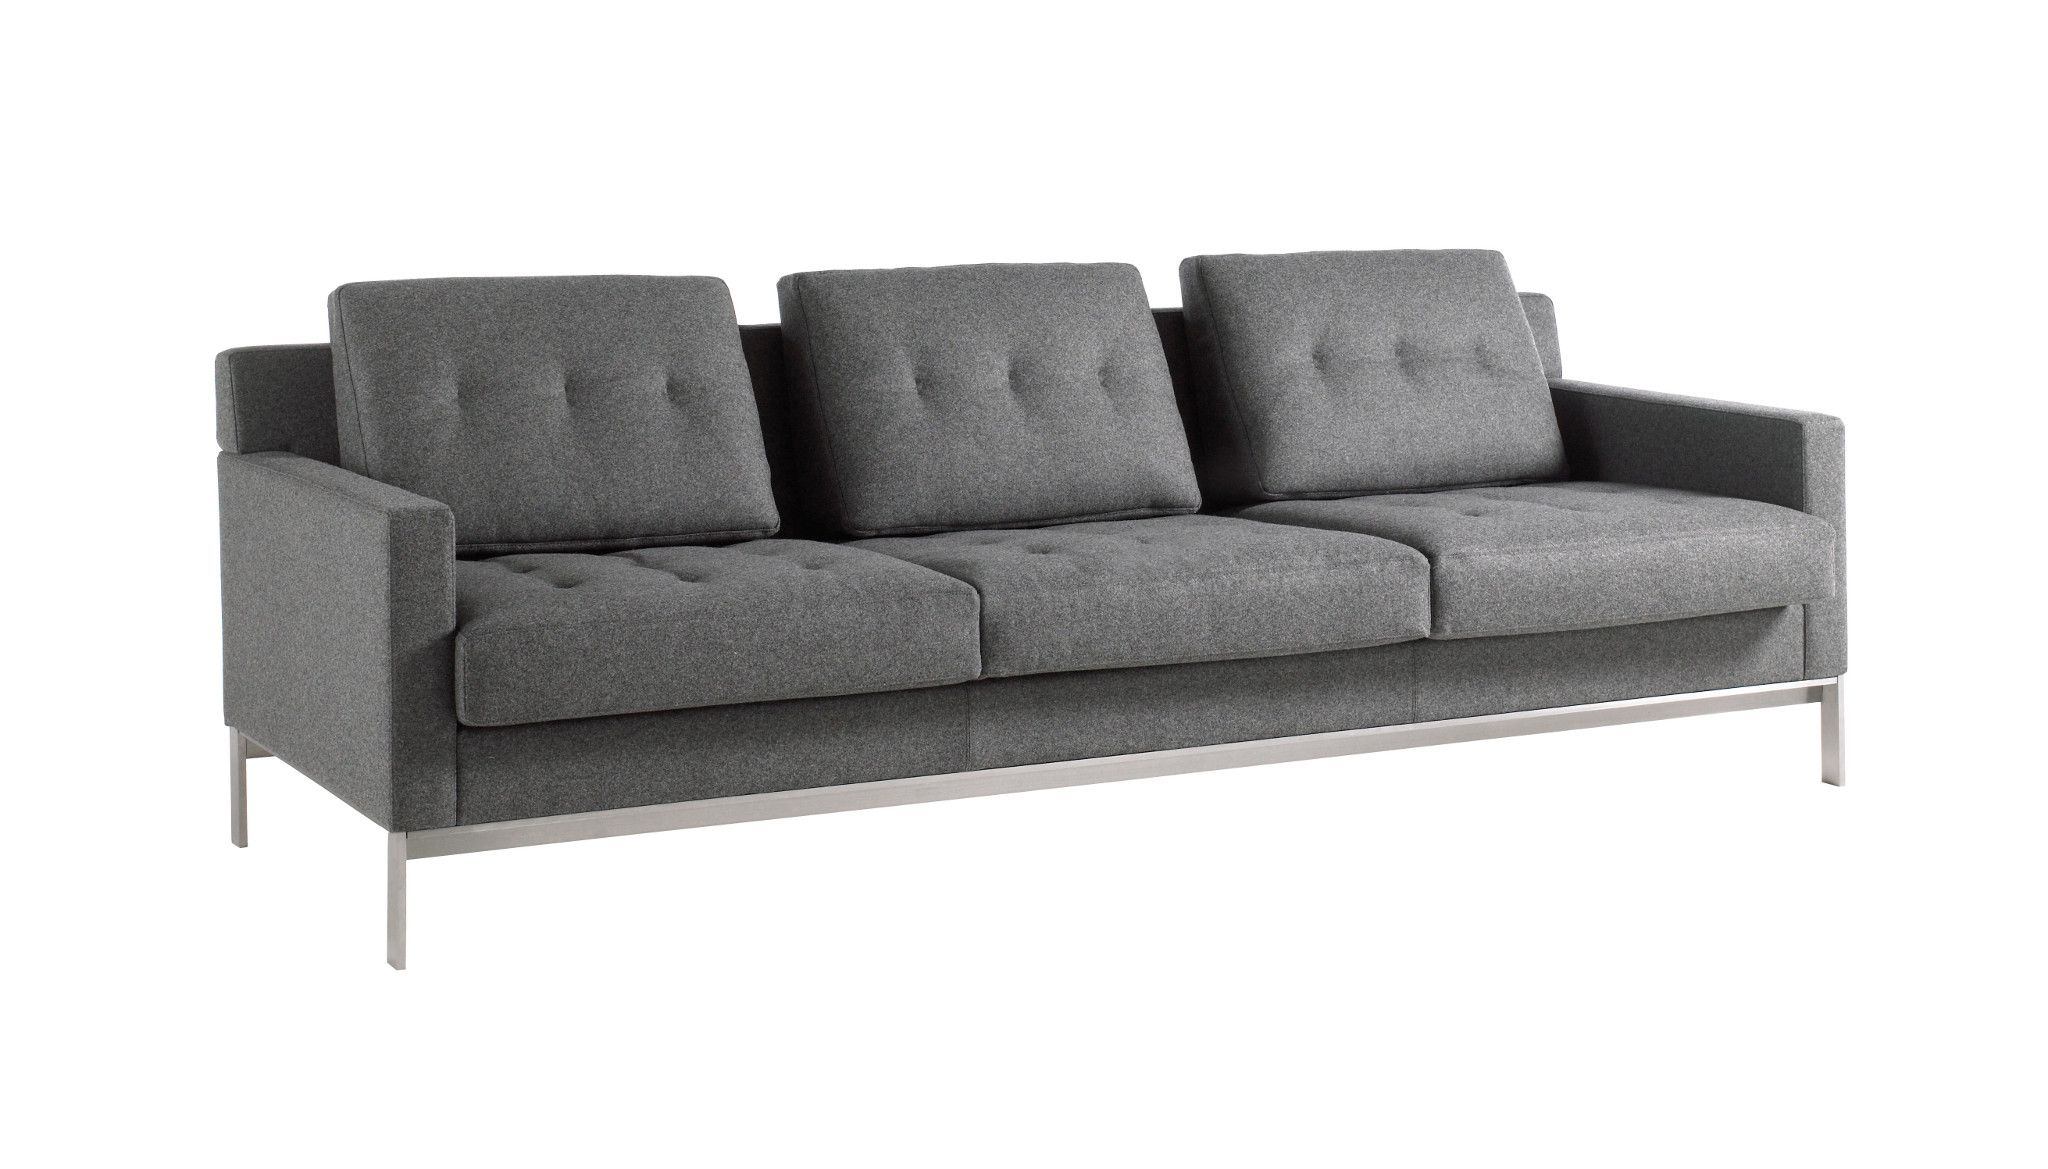 Inspired By A Mid Century Design From Metro Furniture Coalesse Millbrae Lifestyle Sofa Furniture Sofa Three Seat Sofa